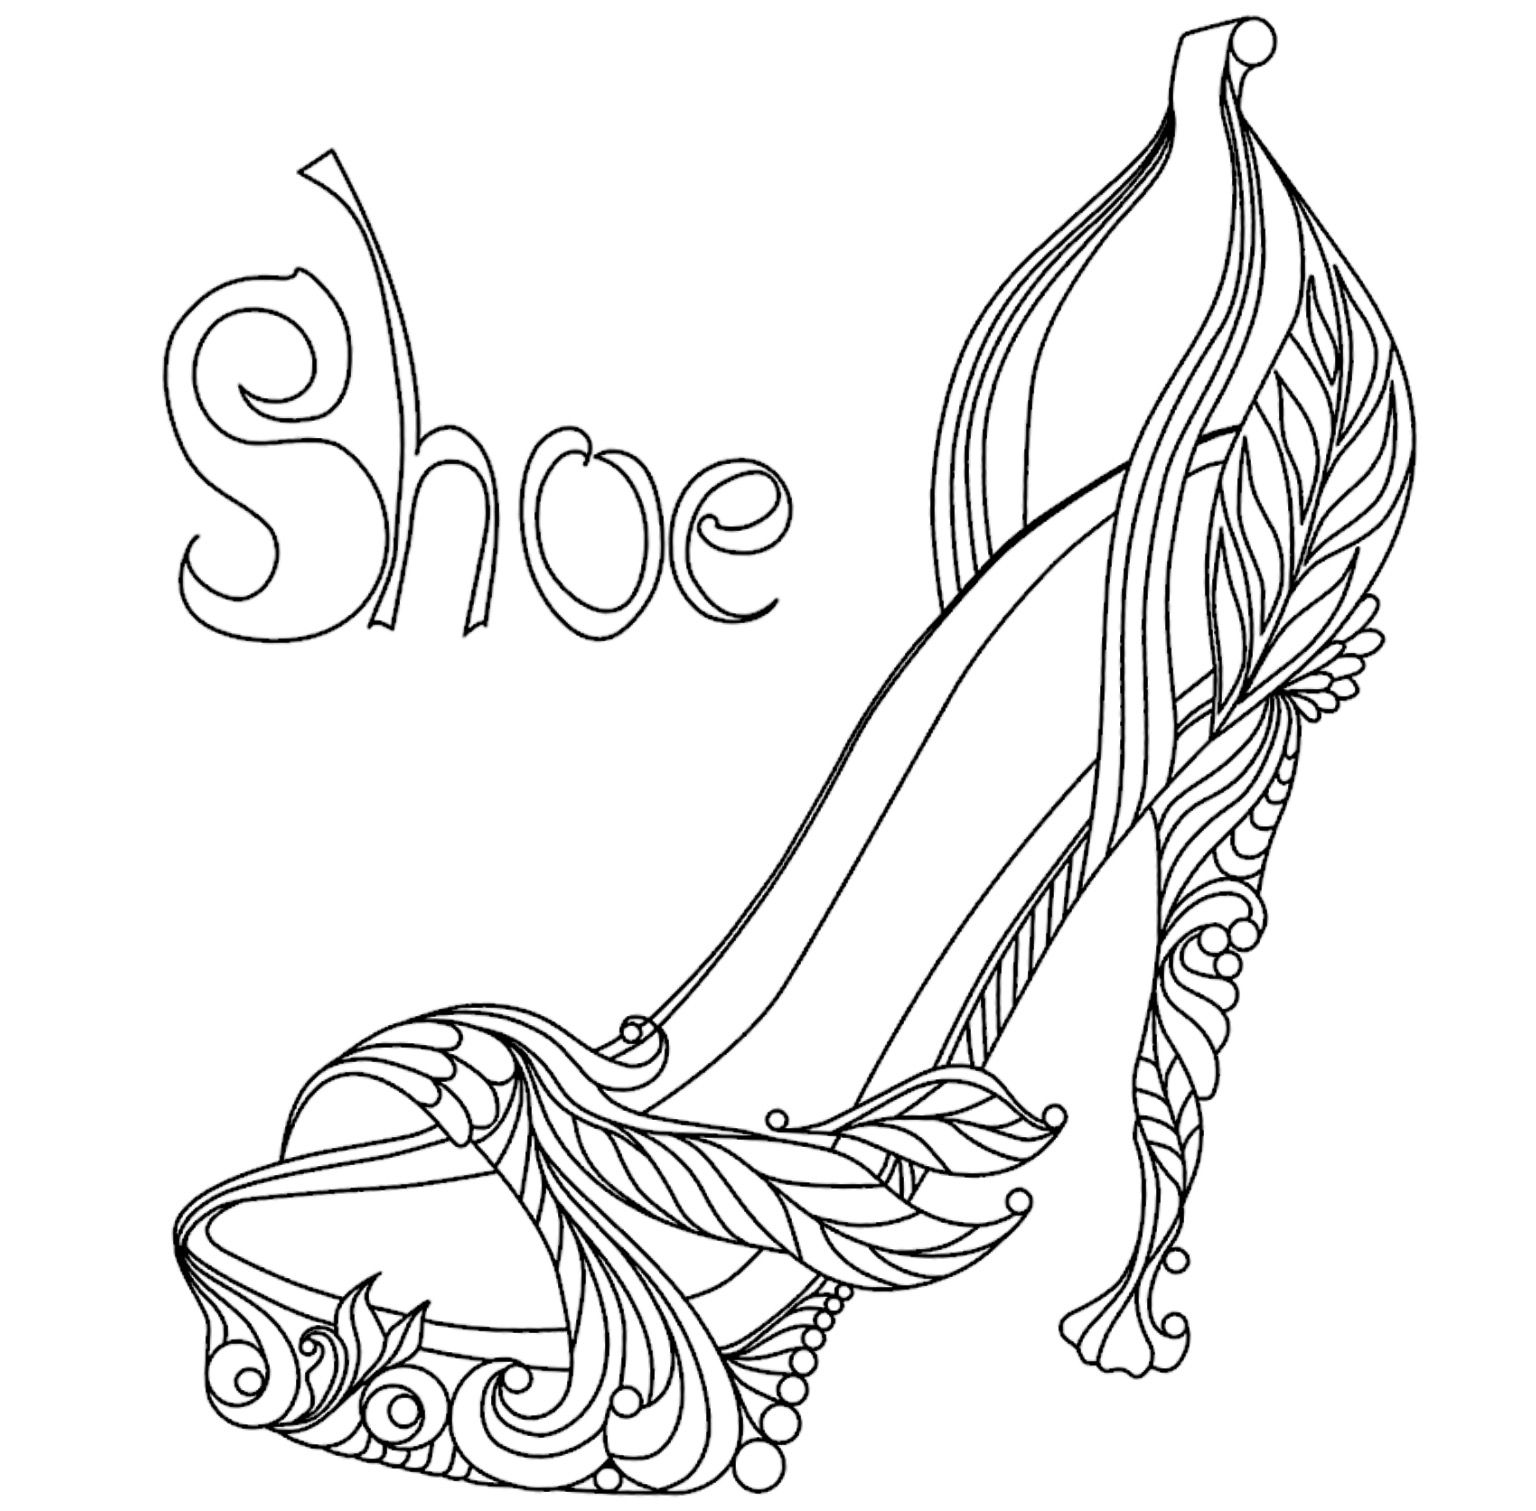 images of shoes to color high heel shoes coloring page color me app adult shoes to of images color